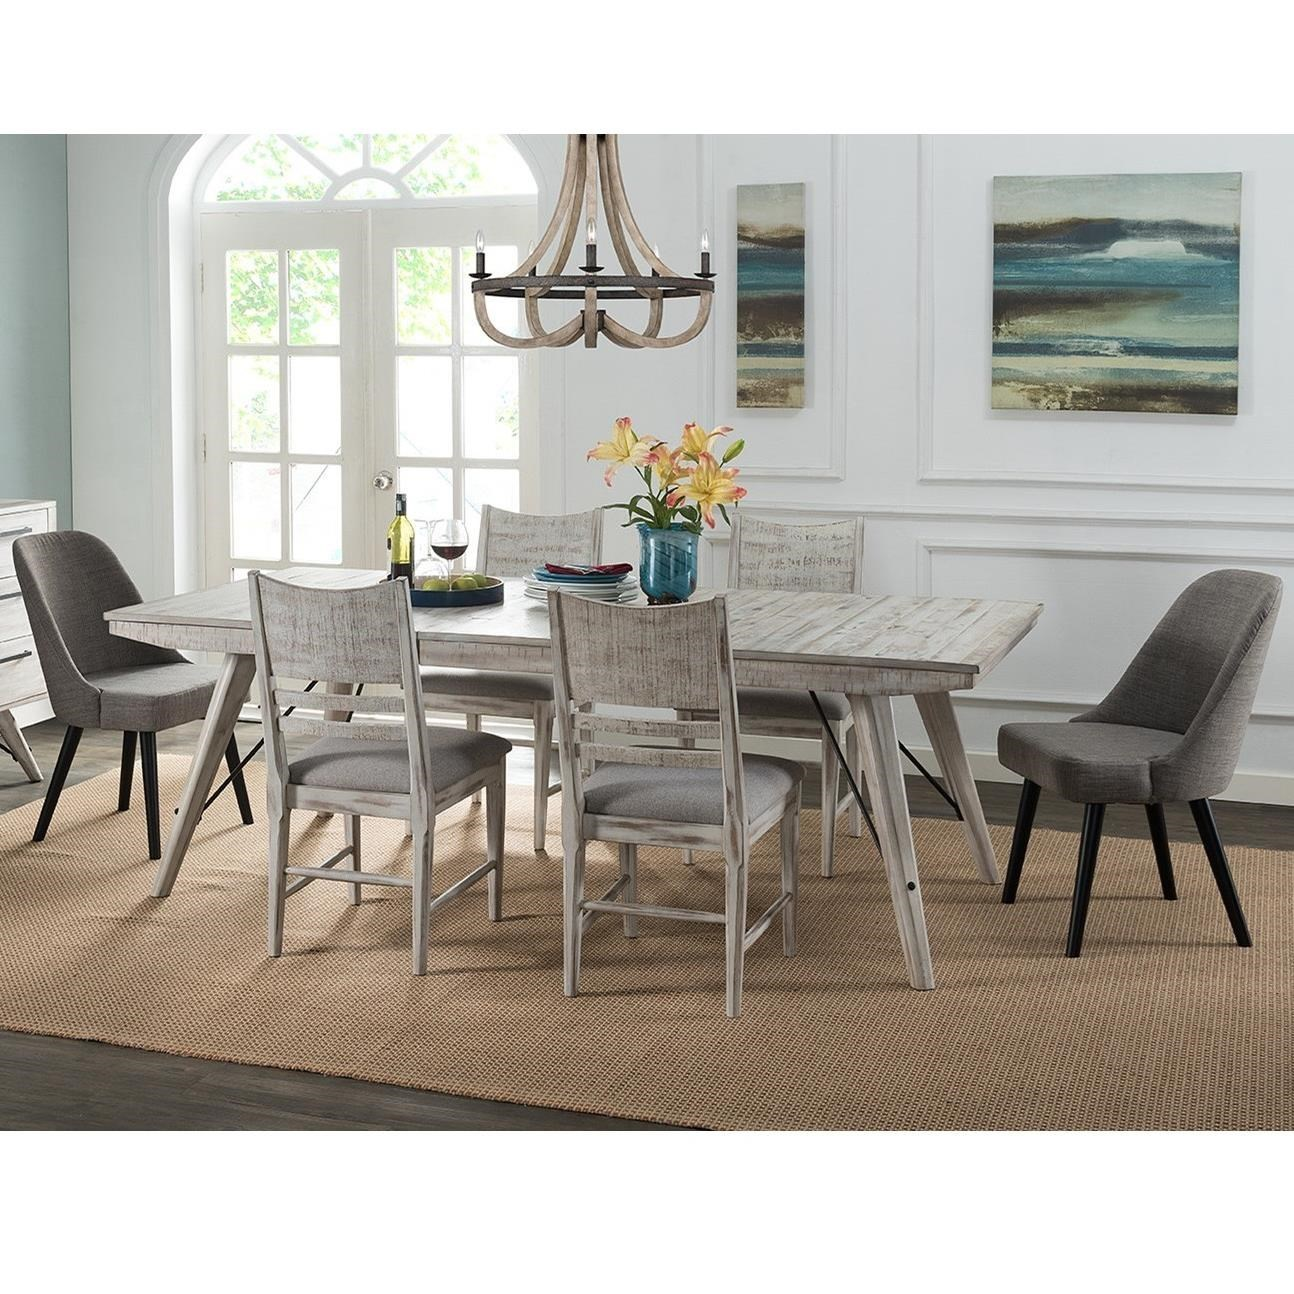 Intercon Modern Rustic Contemporary 7 Piece Table And Chair Set Wayside Furniture Dining 7 Or More Piece Sets